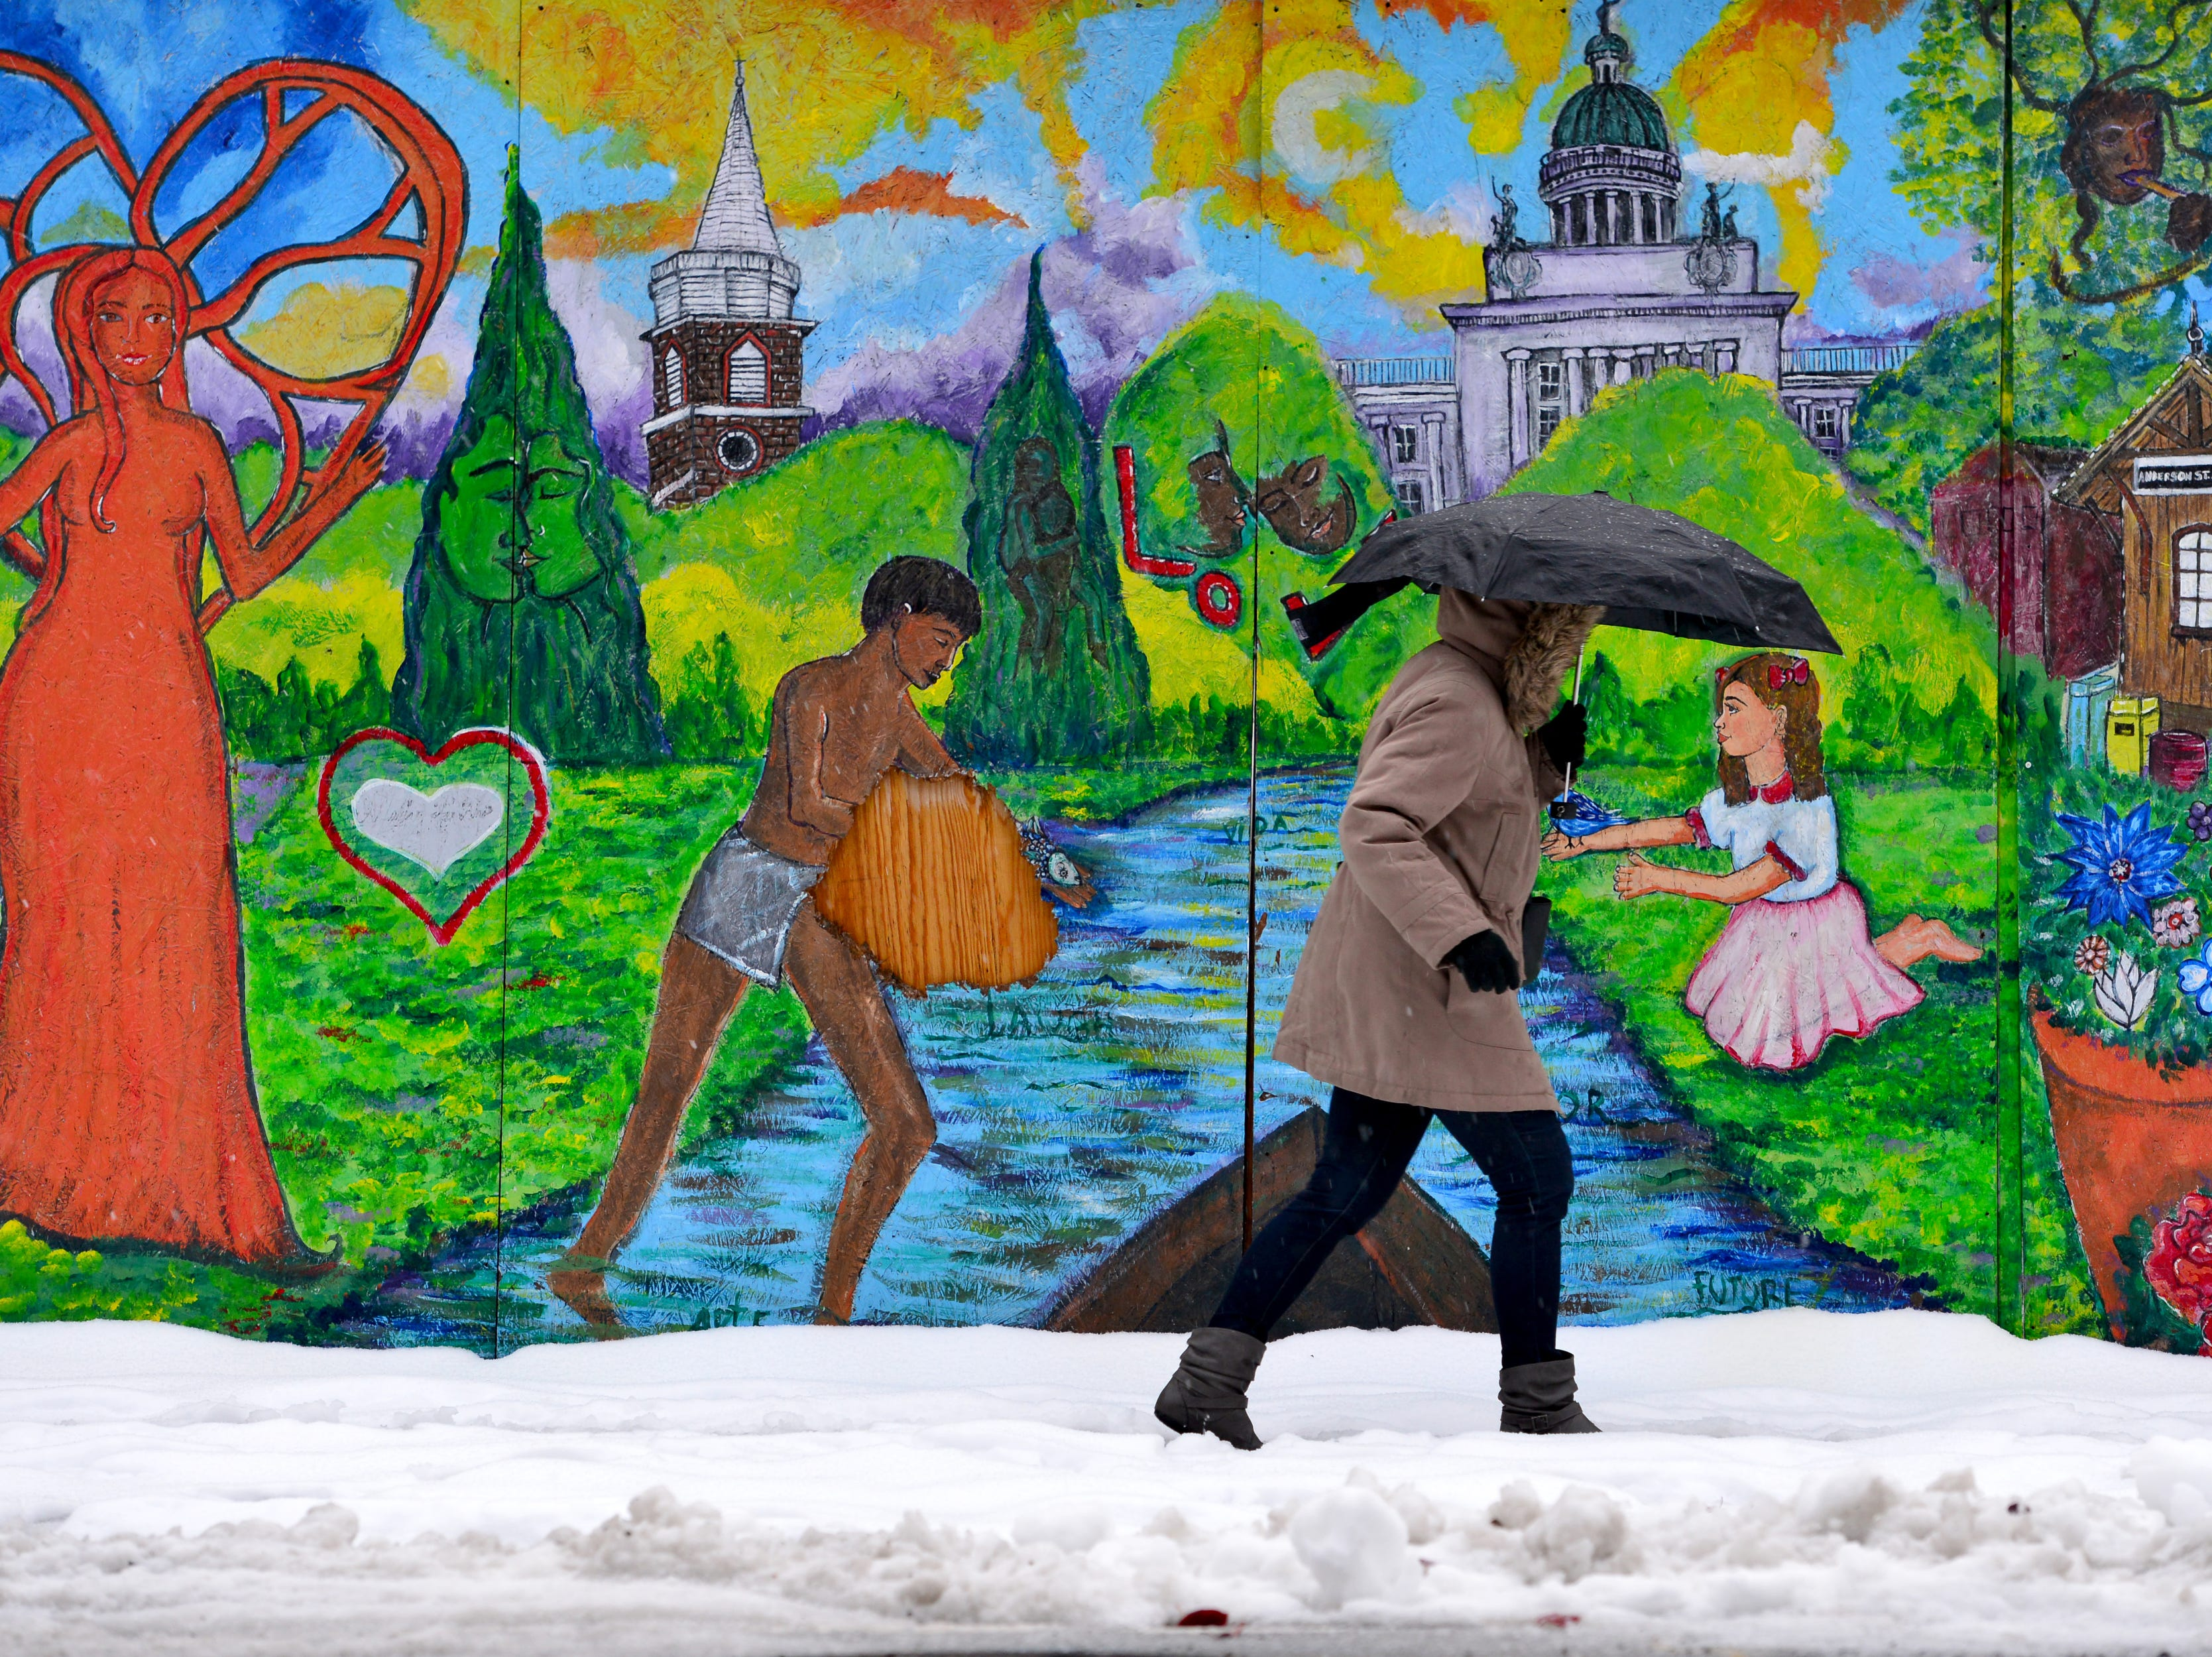 A woman with an umbrella to shied herself from the snow and sleet as she walks past a mural on Main St in Hackensack on Friday morning November 16, 2018.